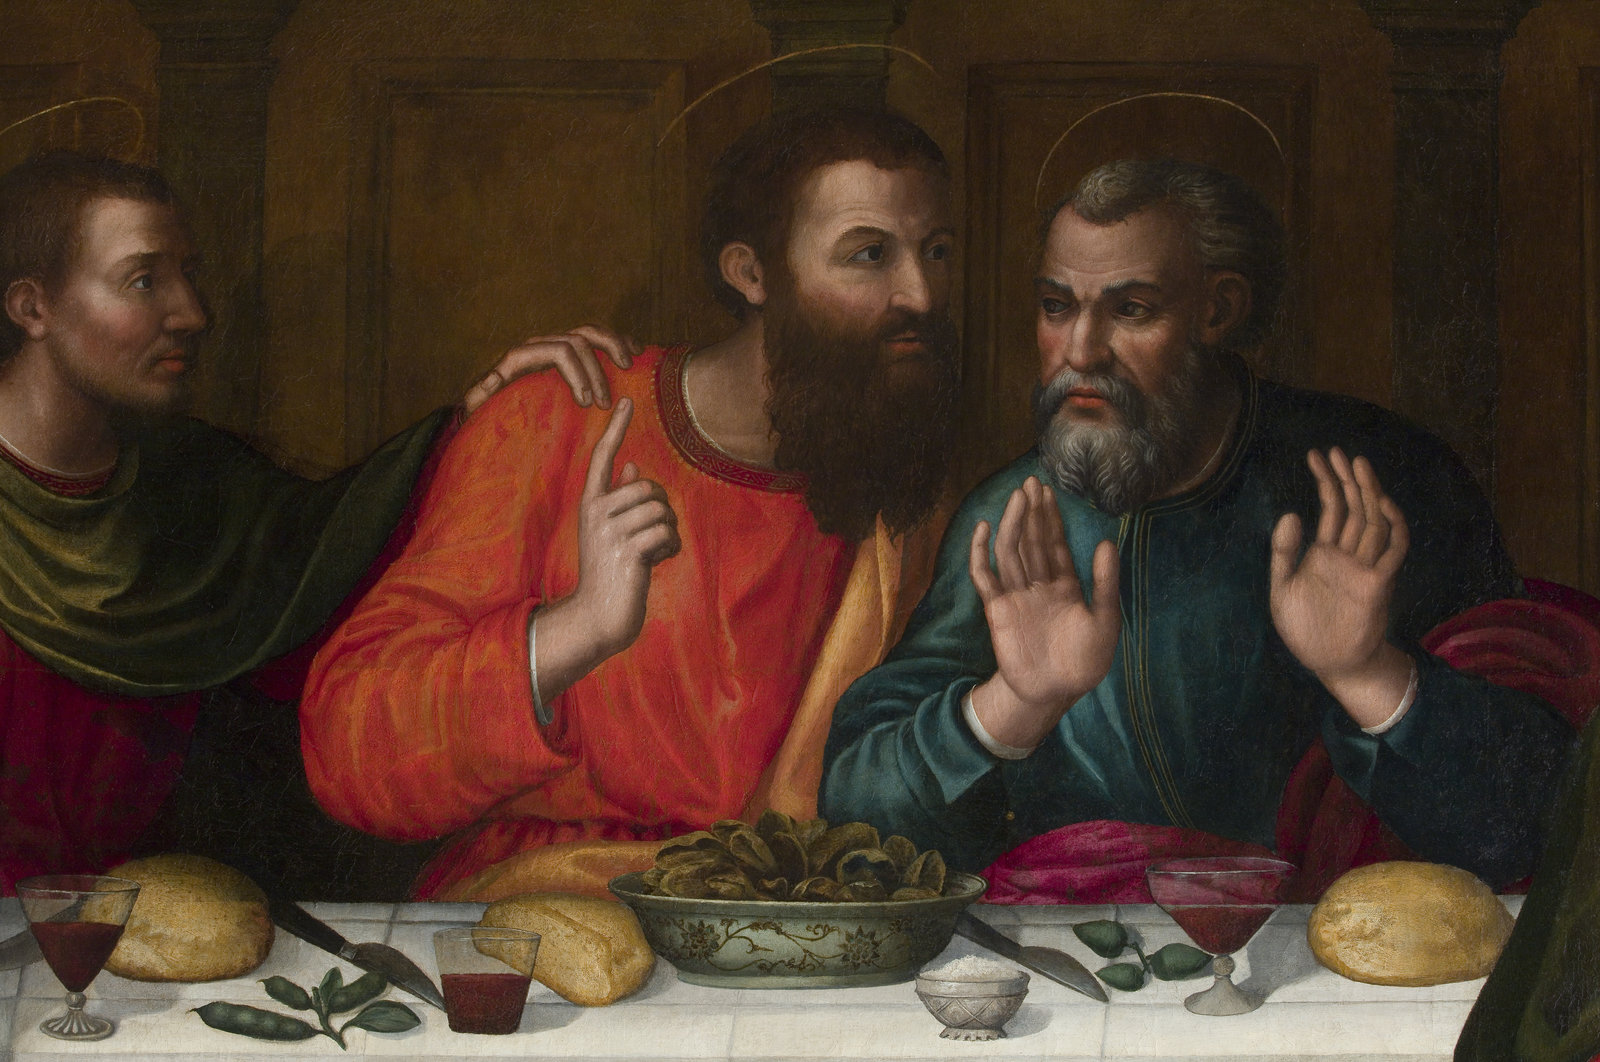 Nelli's Apostles restored, possibly showing Thomas and Peter.